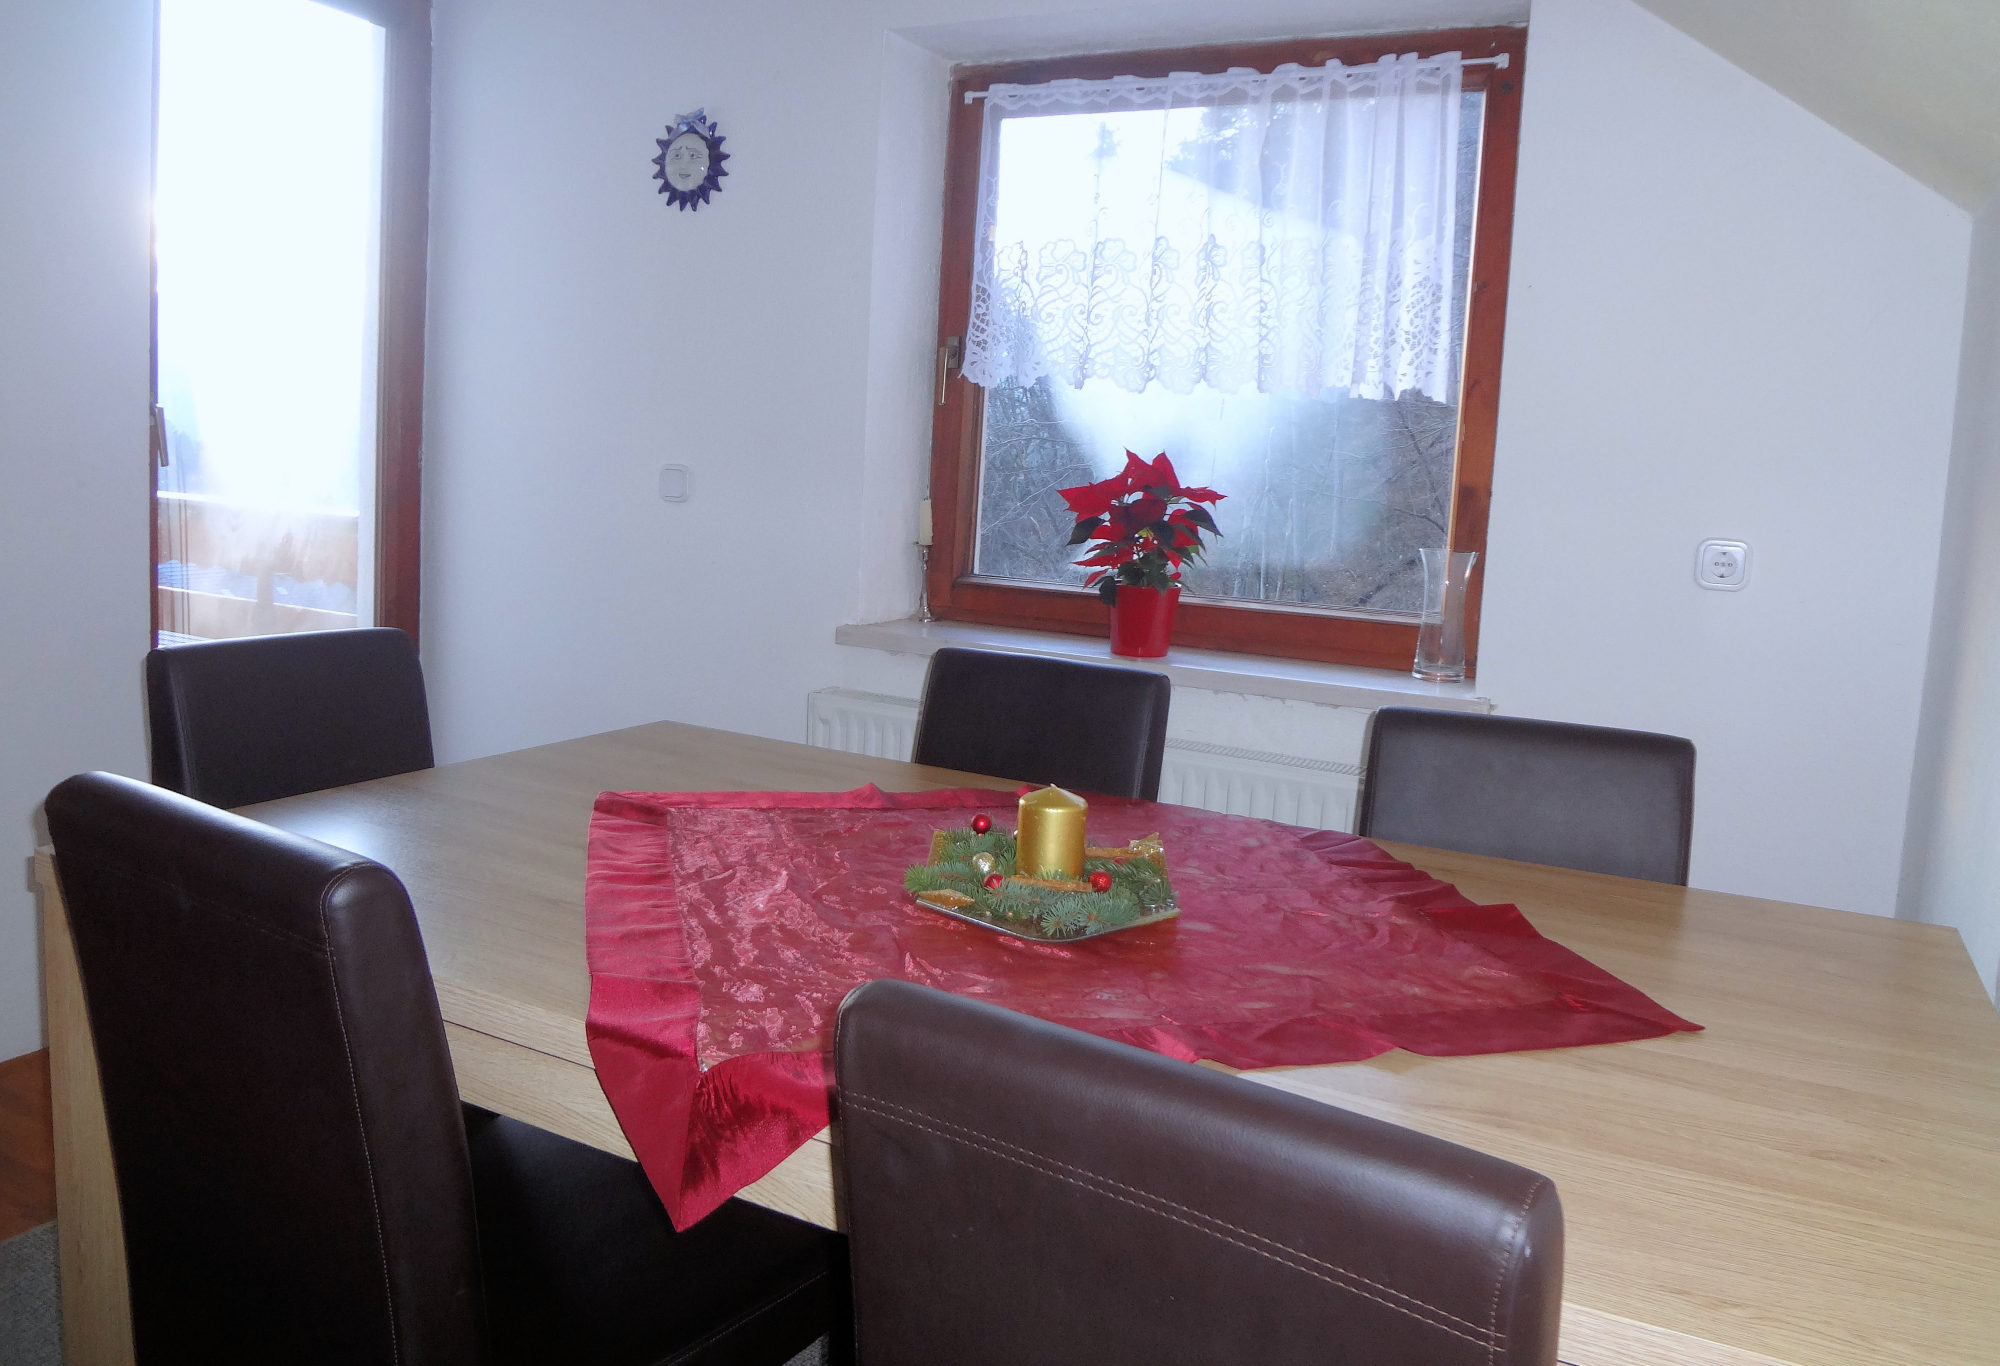 The dinning area of Apartments Fine Stay in the Bled area of Slovenia in the Christmas time